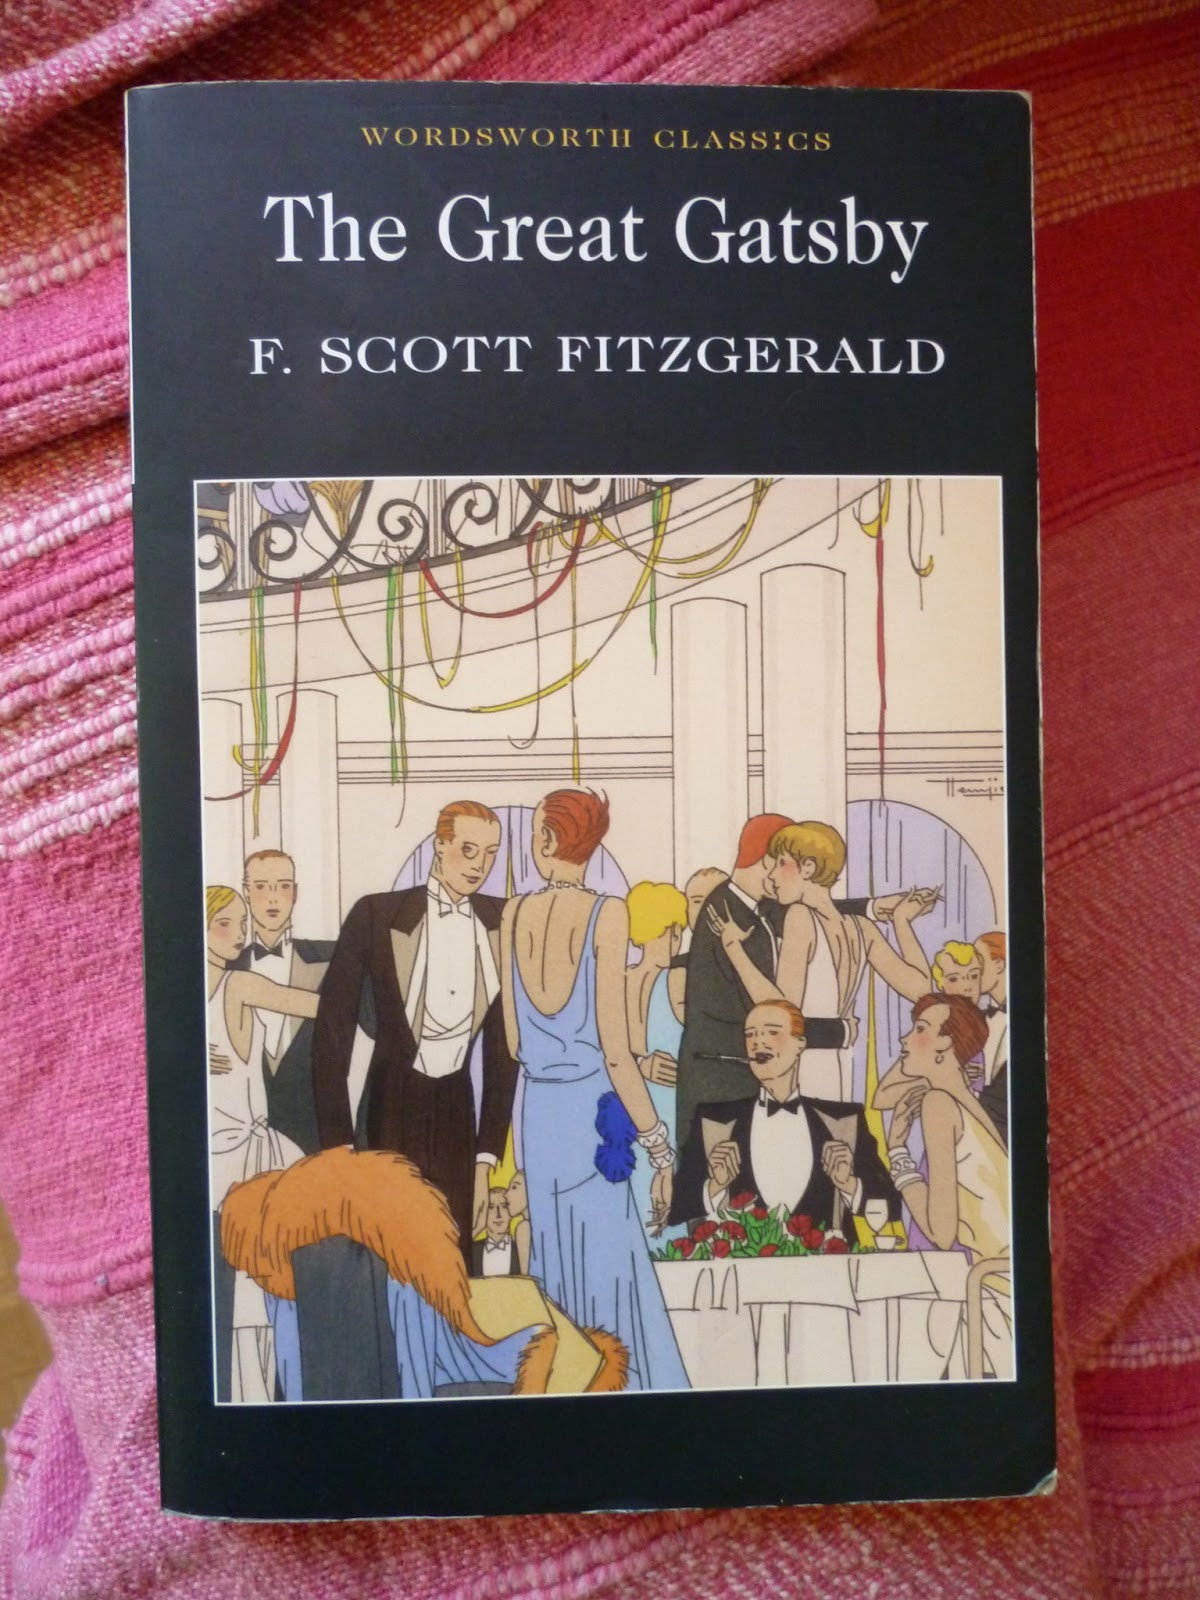 a summary of the characters of the great gatsby by f scott fitzgerald In the book the great gatsby, by f scott fitzgerald,  while reading the story, the characters' views on how  more about short summary of the great gatsby.